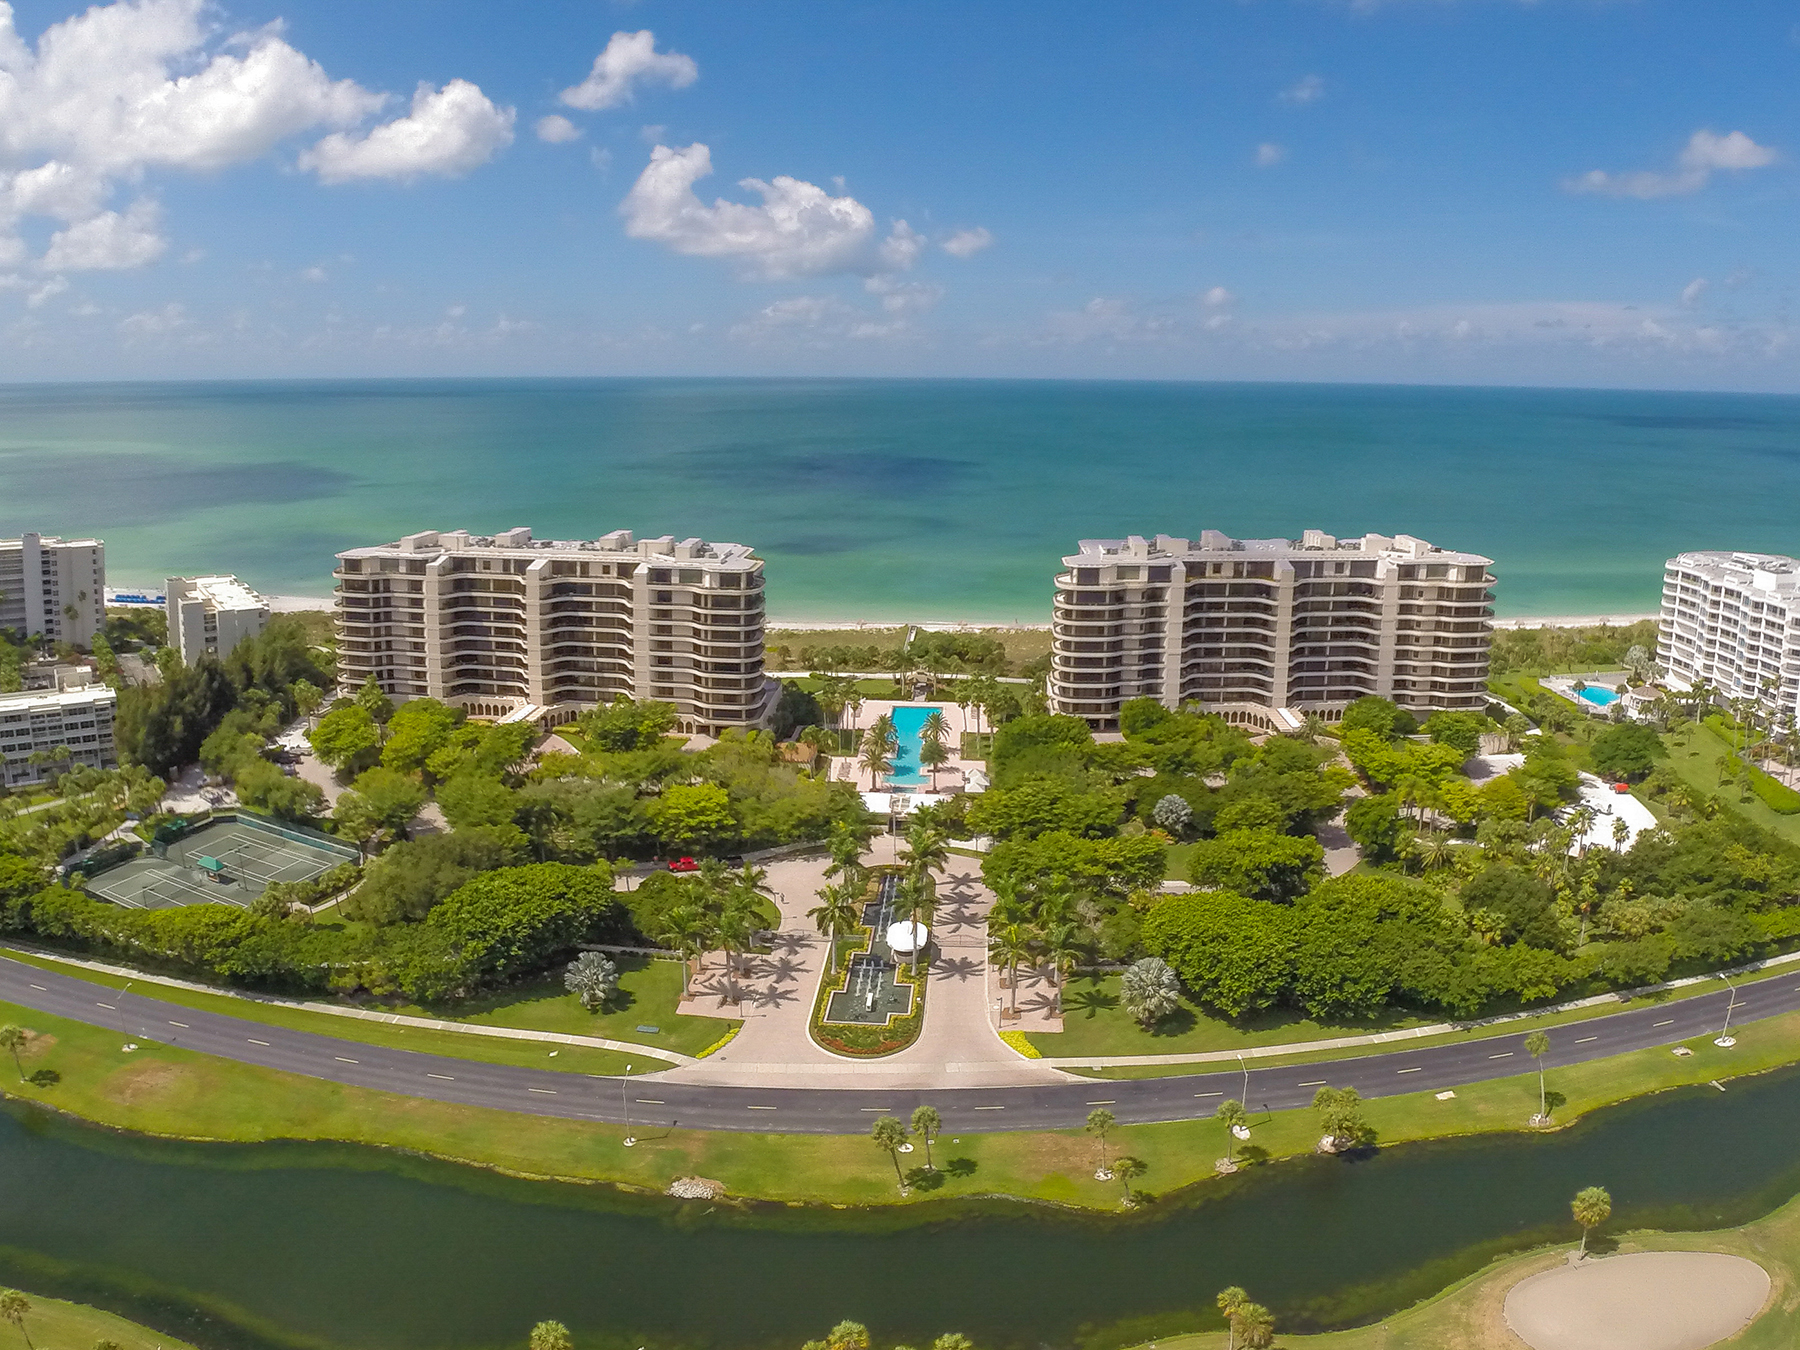 Condominium for Sale at L AMBIANCE 415 L Ambiance Dr D606 Longboat Key, Florida 34228 United States